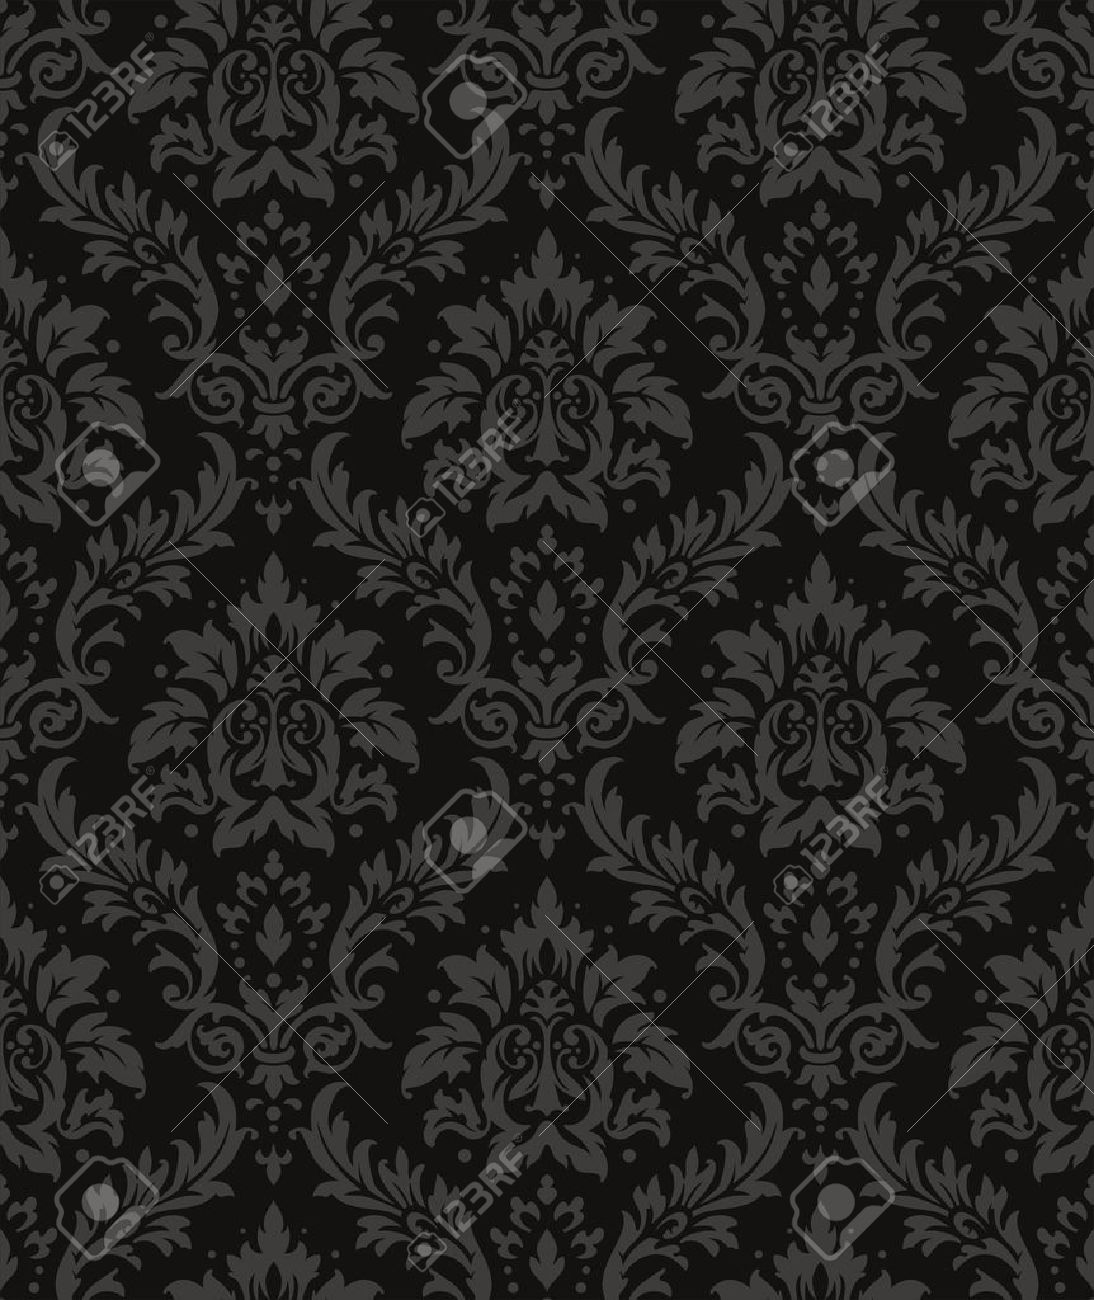 Old Style Damask Wallpaper Seamless Vector Floral Patterns Stock